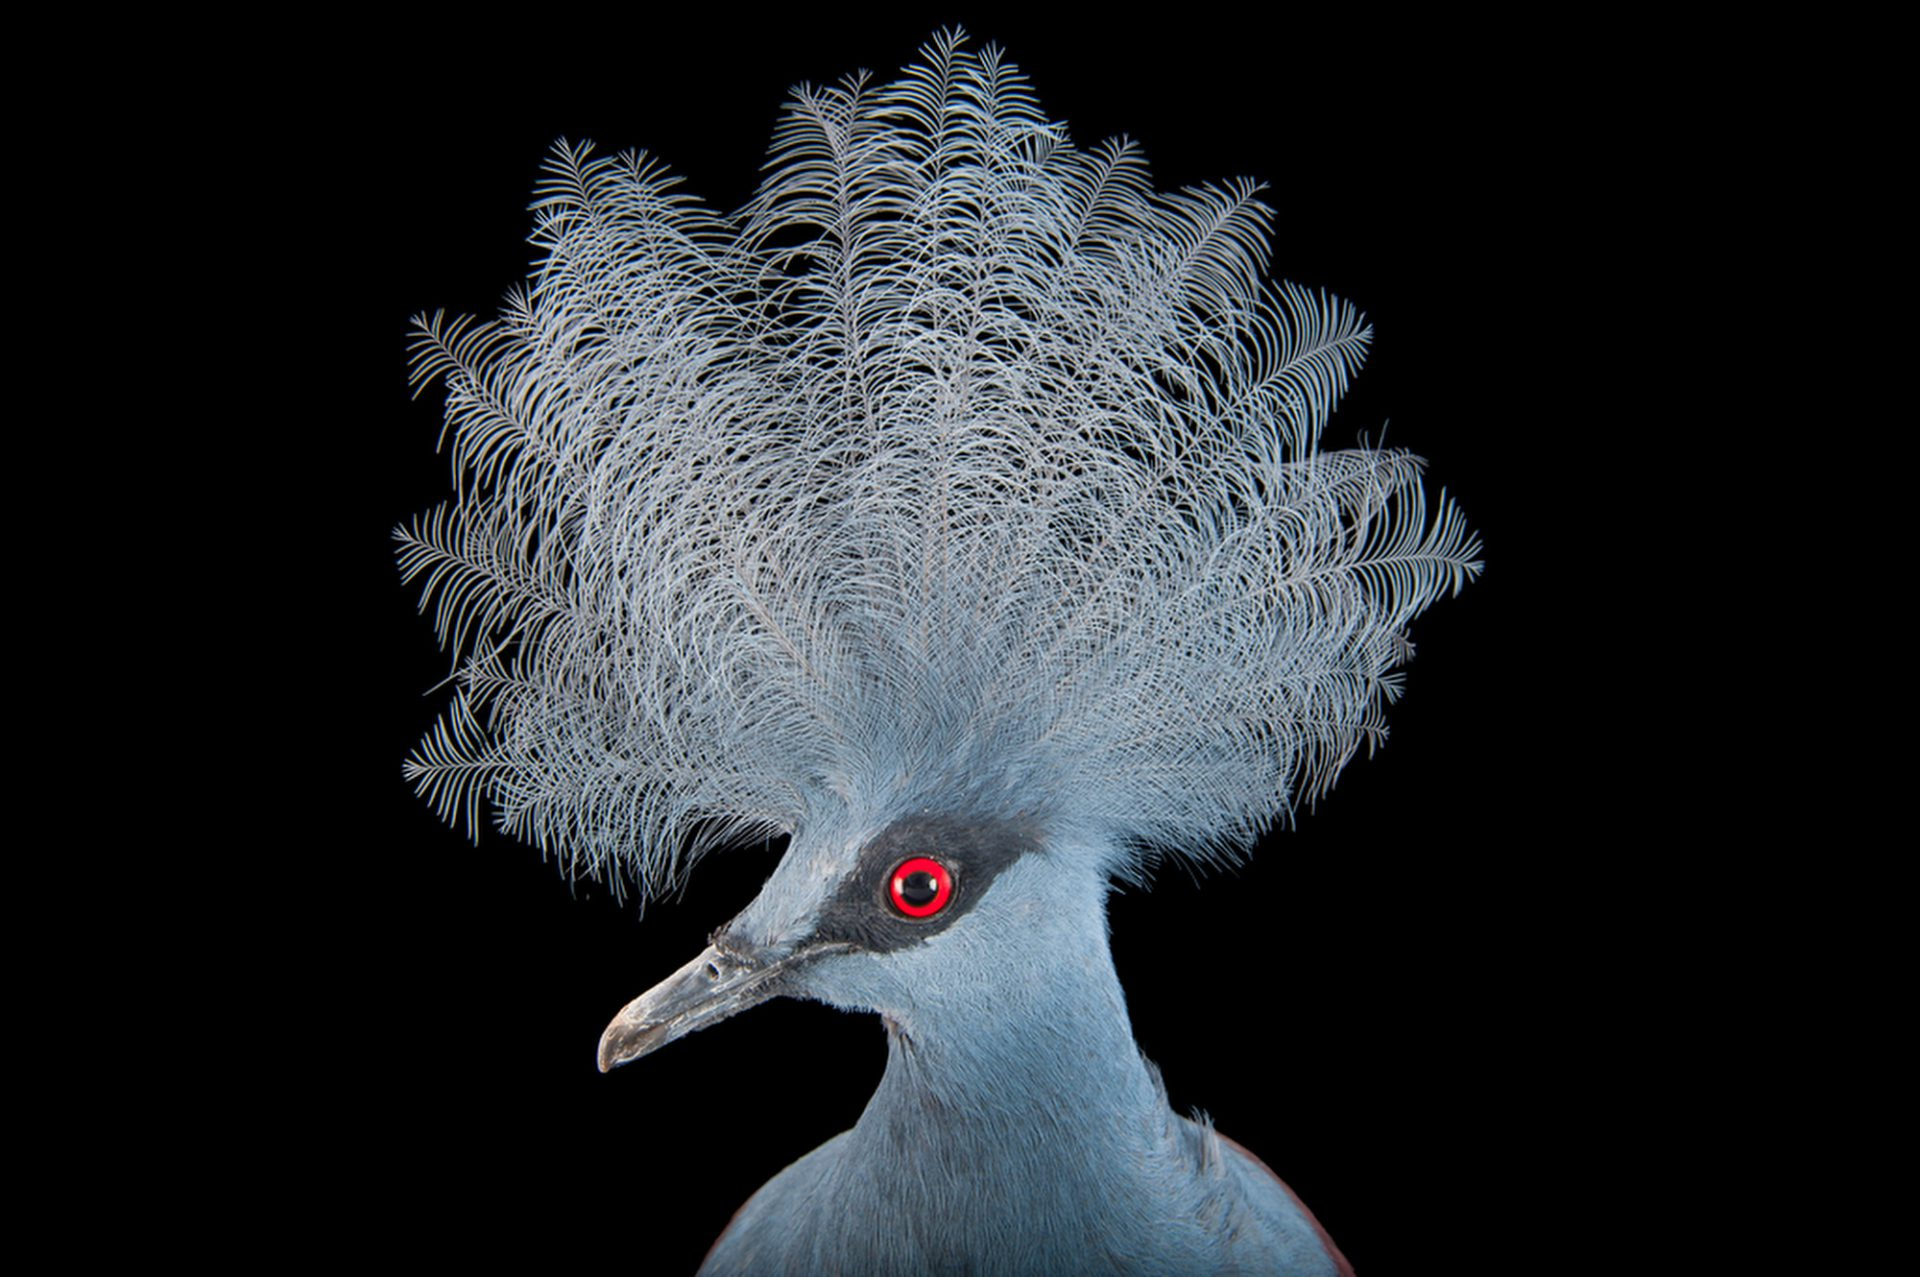 A vulnerable blue crowned pigeon (Goura cristata) at Omaha's Henry Doorly Zoo and Aquarium, Omaha, Nebraska.